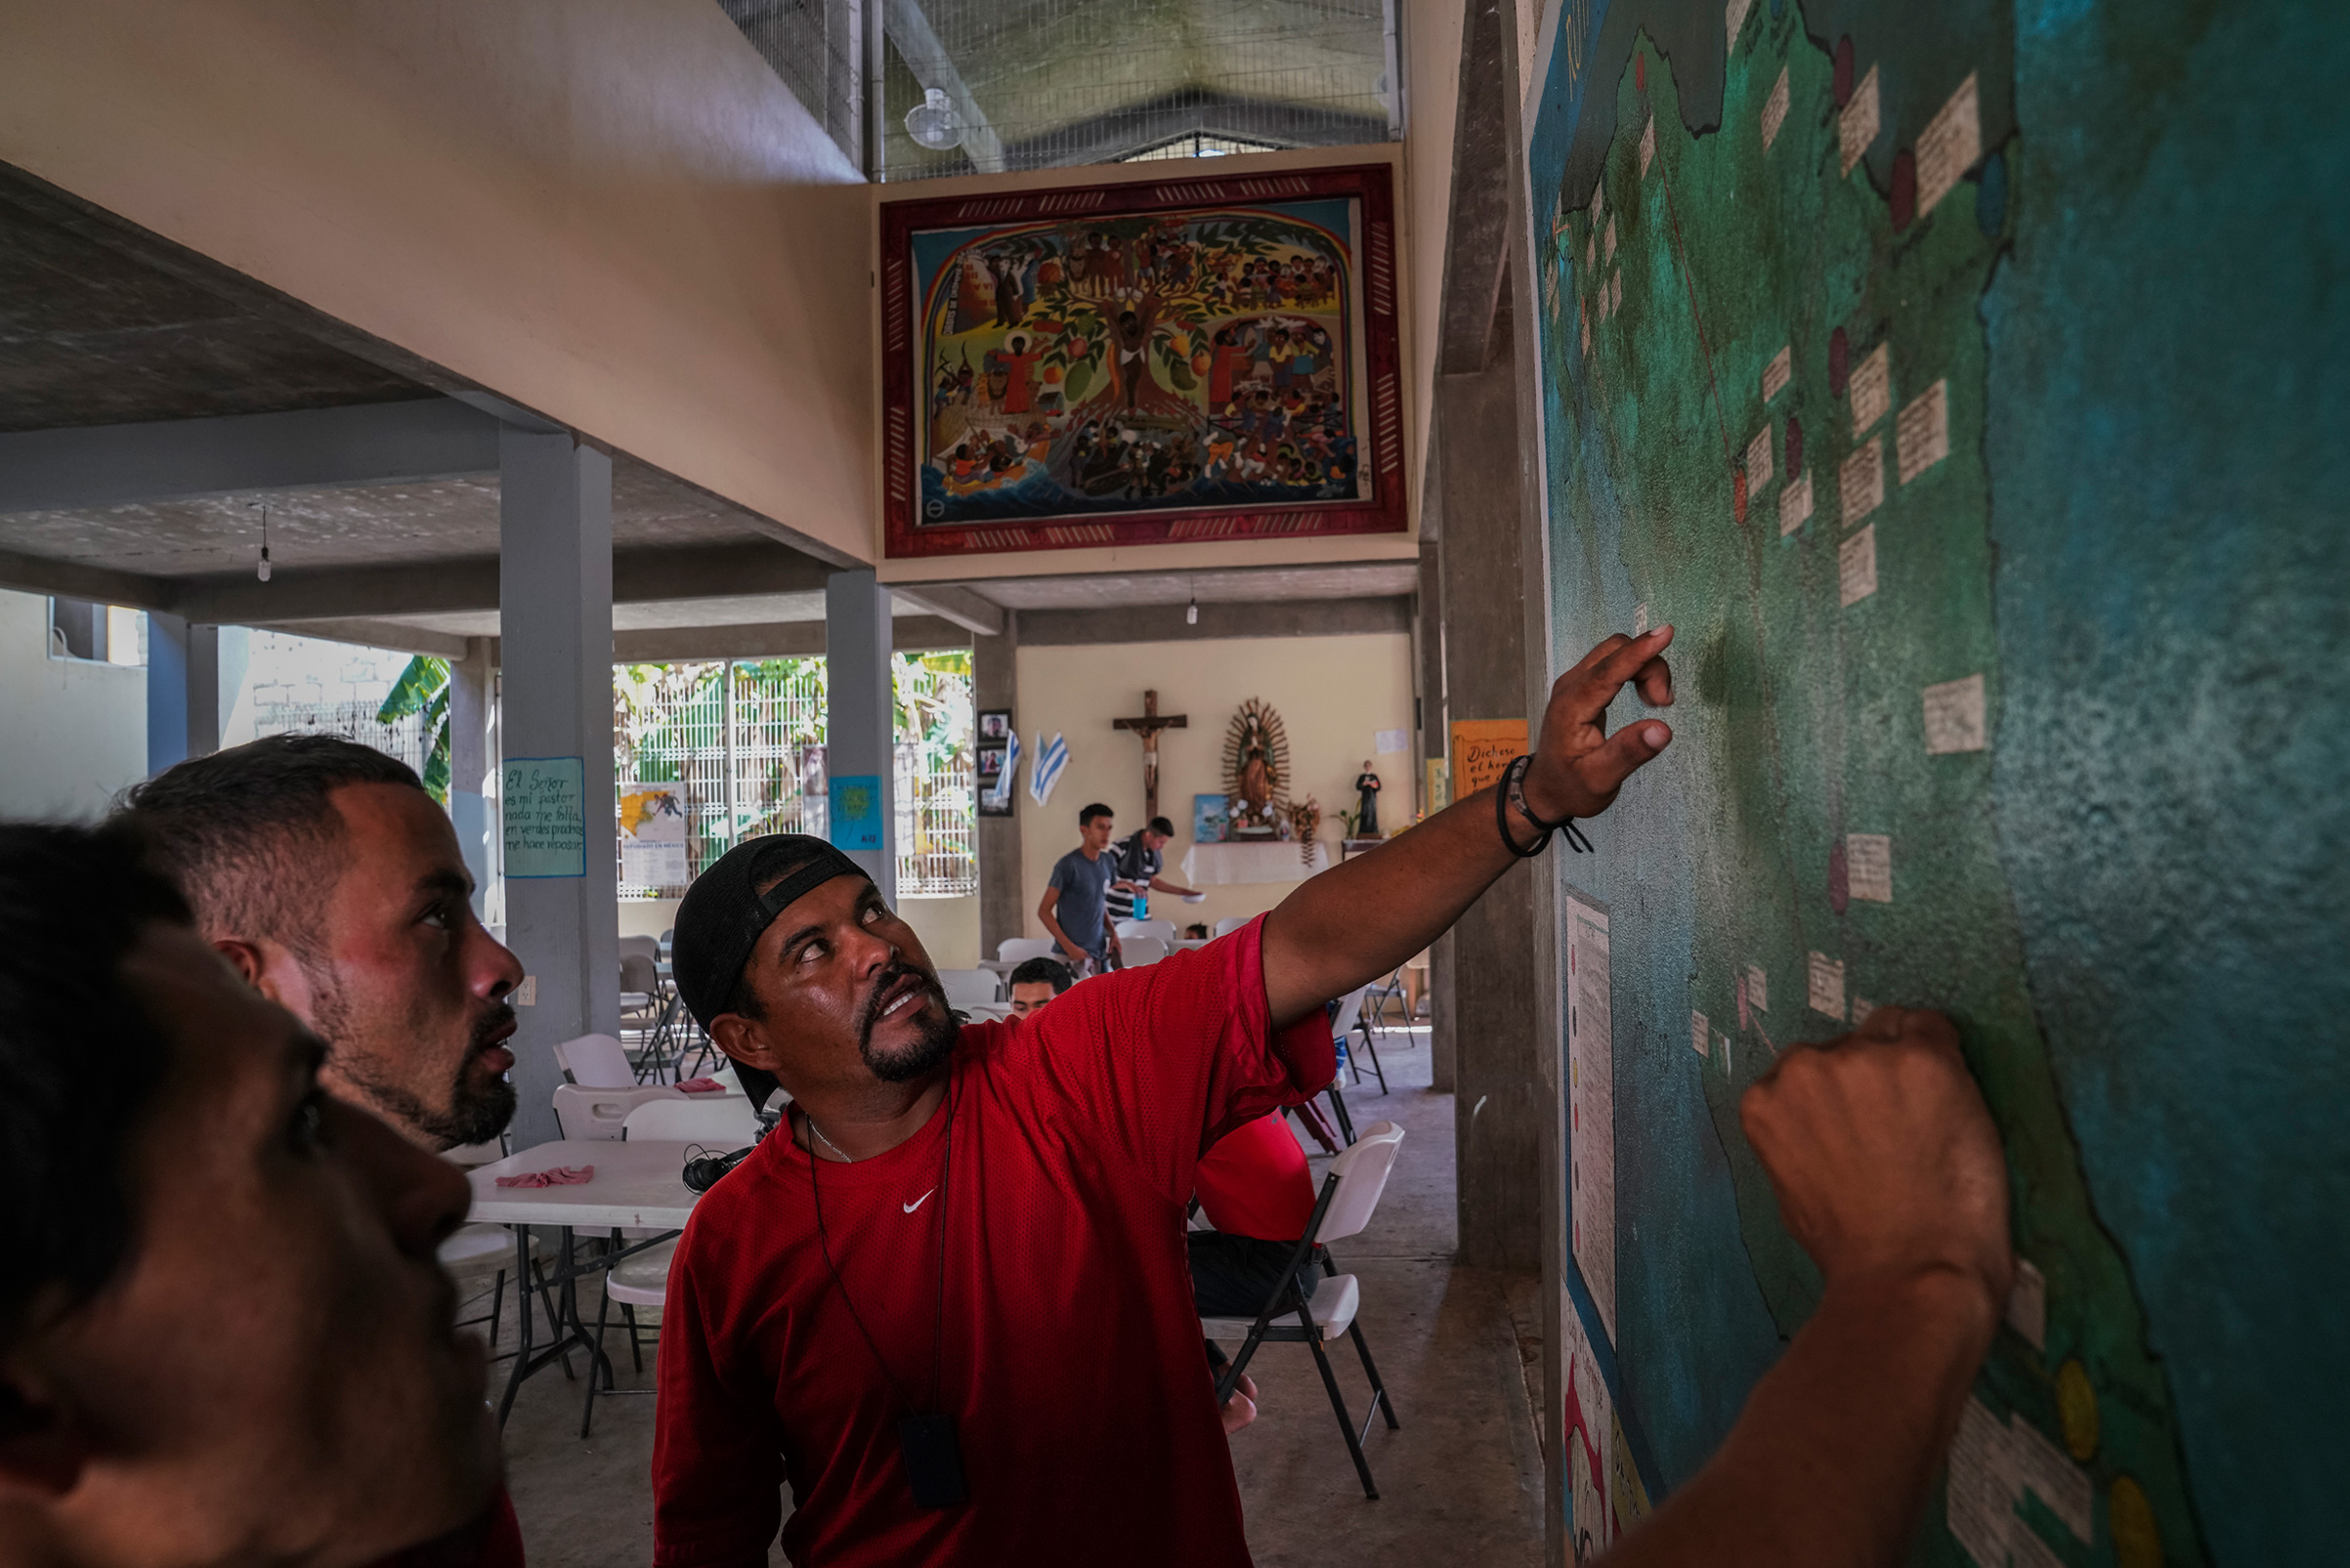 Miguel Alvarado, 36, explains the different routes that migrants can take at a shelter near Palenque, Chiapas, on Oct. 20. Miguel plans to work in the U.S. to be able to support his three kids who he left behind. He had heard about the caravan that is currently traveling through Mexico, but he decided not to join it because he is afraid they will soon be stopped.